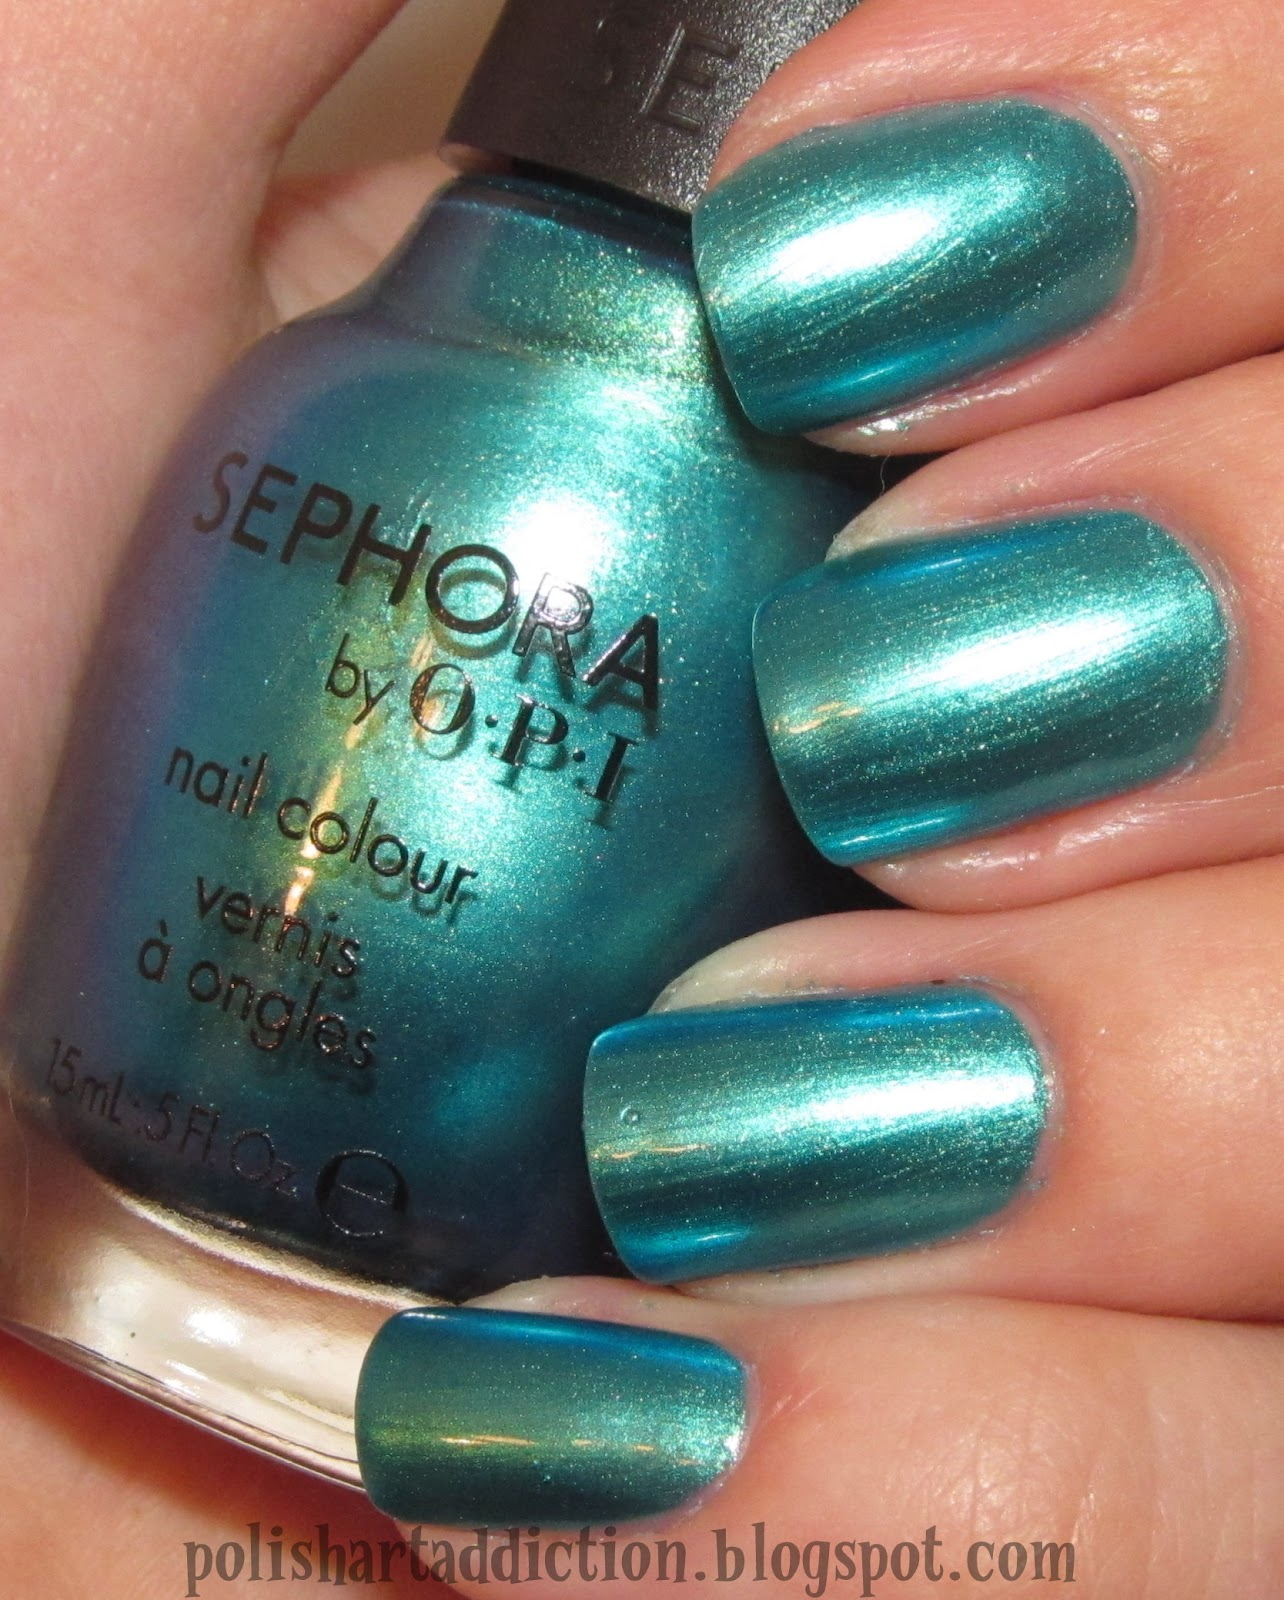 Sephora by OPI - Mermaid to Order